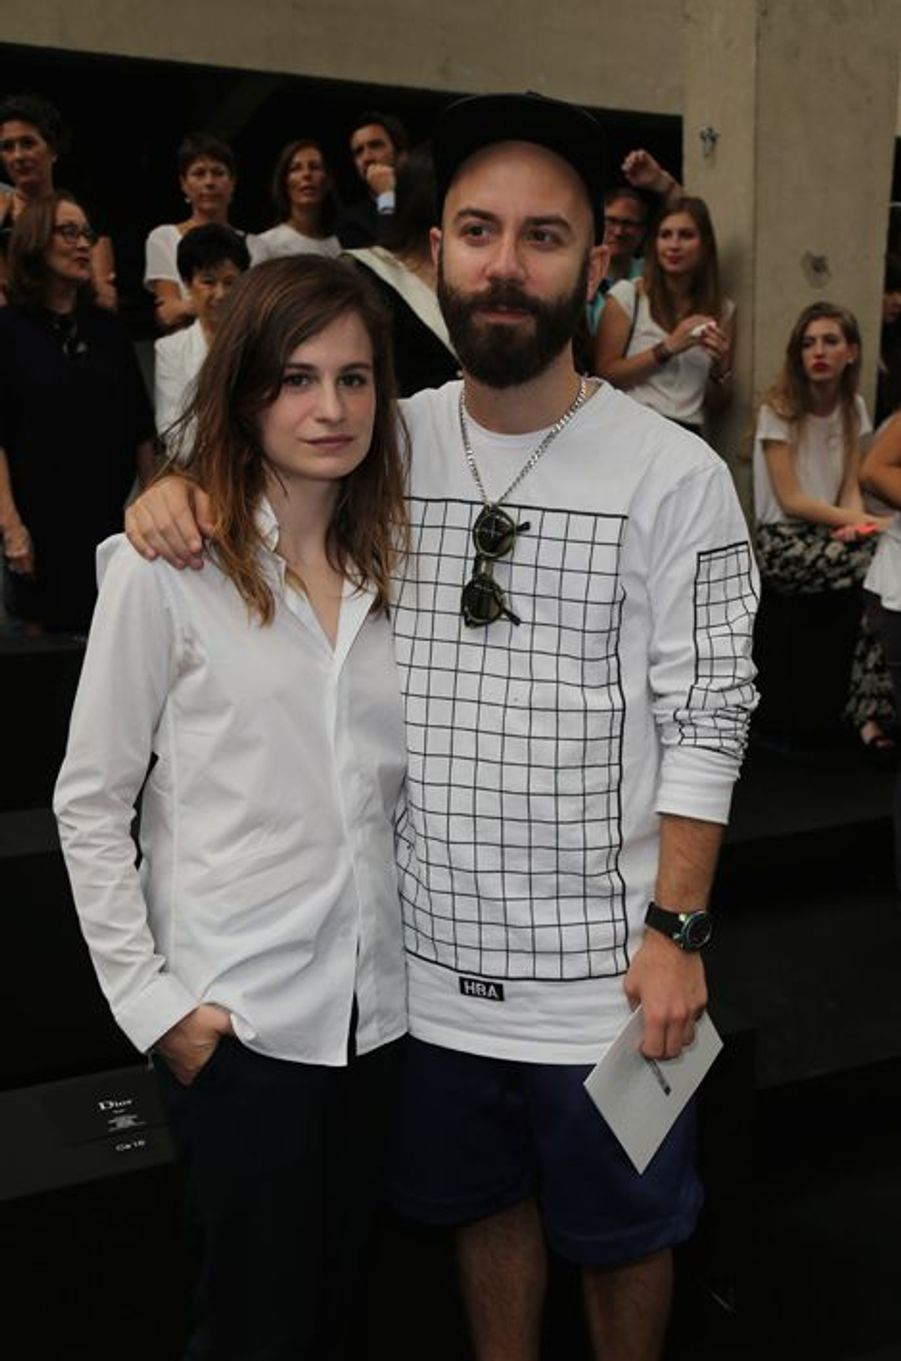 Christine and the Queens et Woodkid